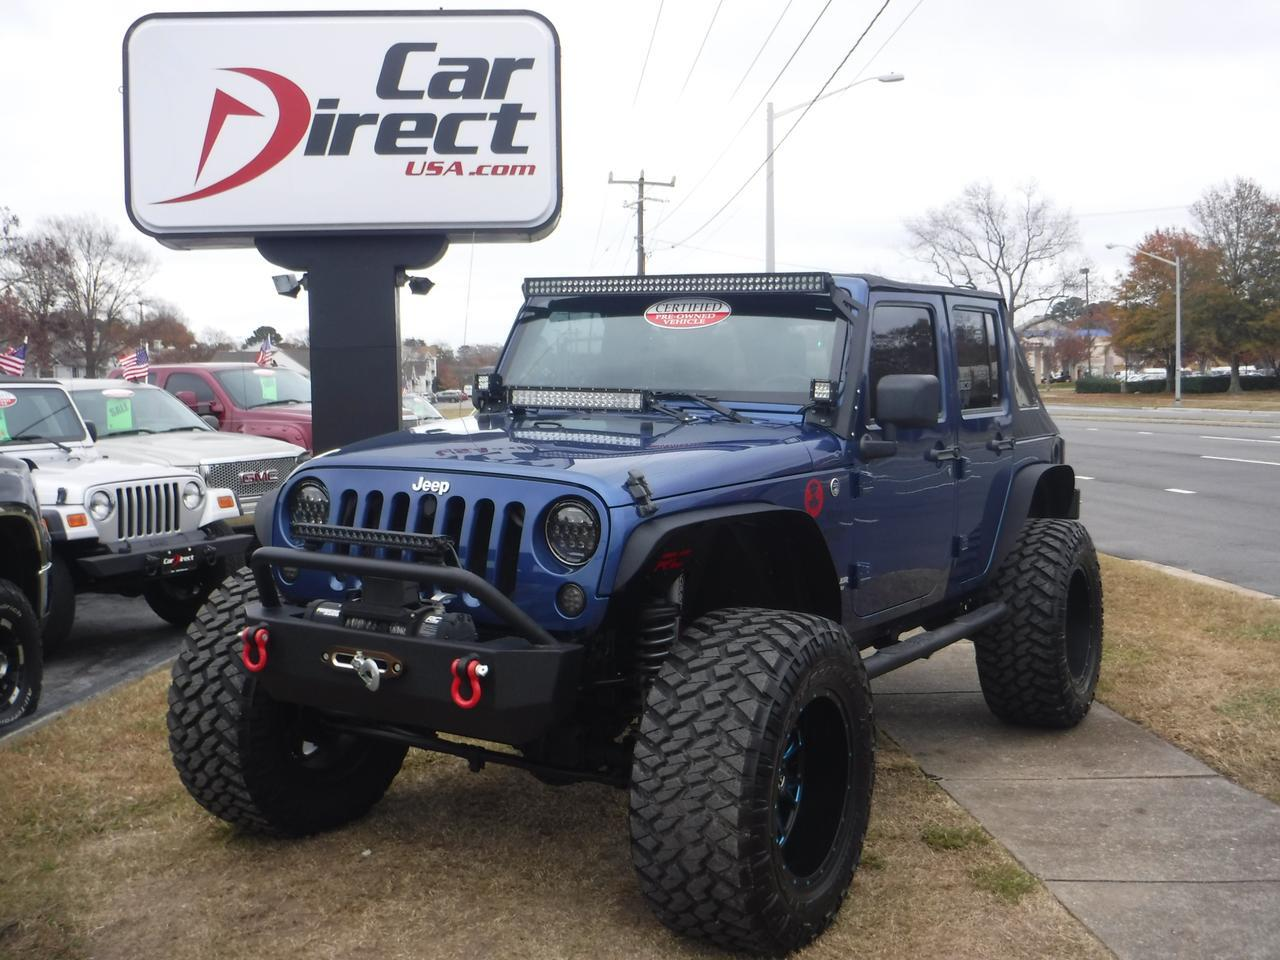 2009 Jeep Wrangler Unlimited Sahara 4x4 Rough Country